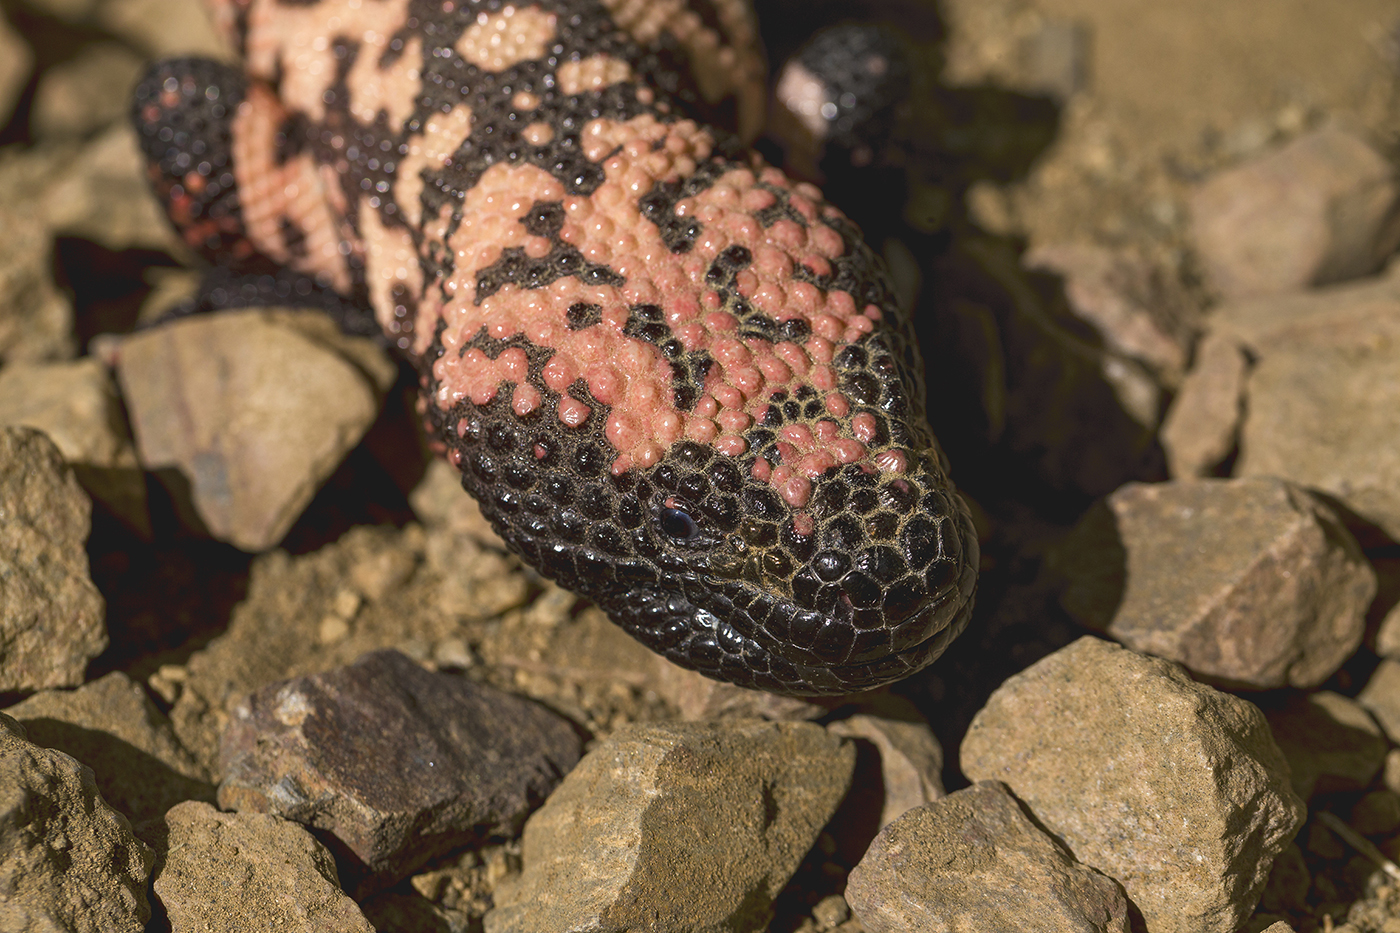 Gila monster Heloderma suspectum Like other reptiles, Gila monsters have three-layered chromatophores in their skin that produce their color. Unlike many reptiles, though, Gila monsters are not green—and they're not yellow, either. Their coloration is the result of the dark melanin layer dominating. The black areas have lots of melanin and the lighter areas have varying amounts, which combine with some of the xanthophore layer of yellow/red to produce everything from dark orange to almost pink.